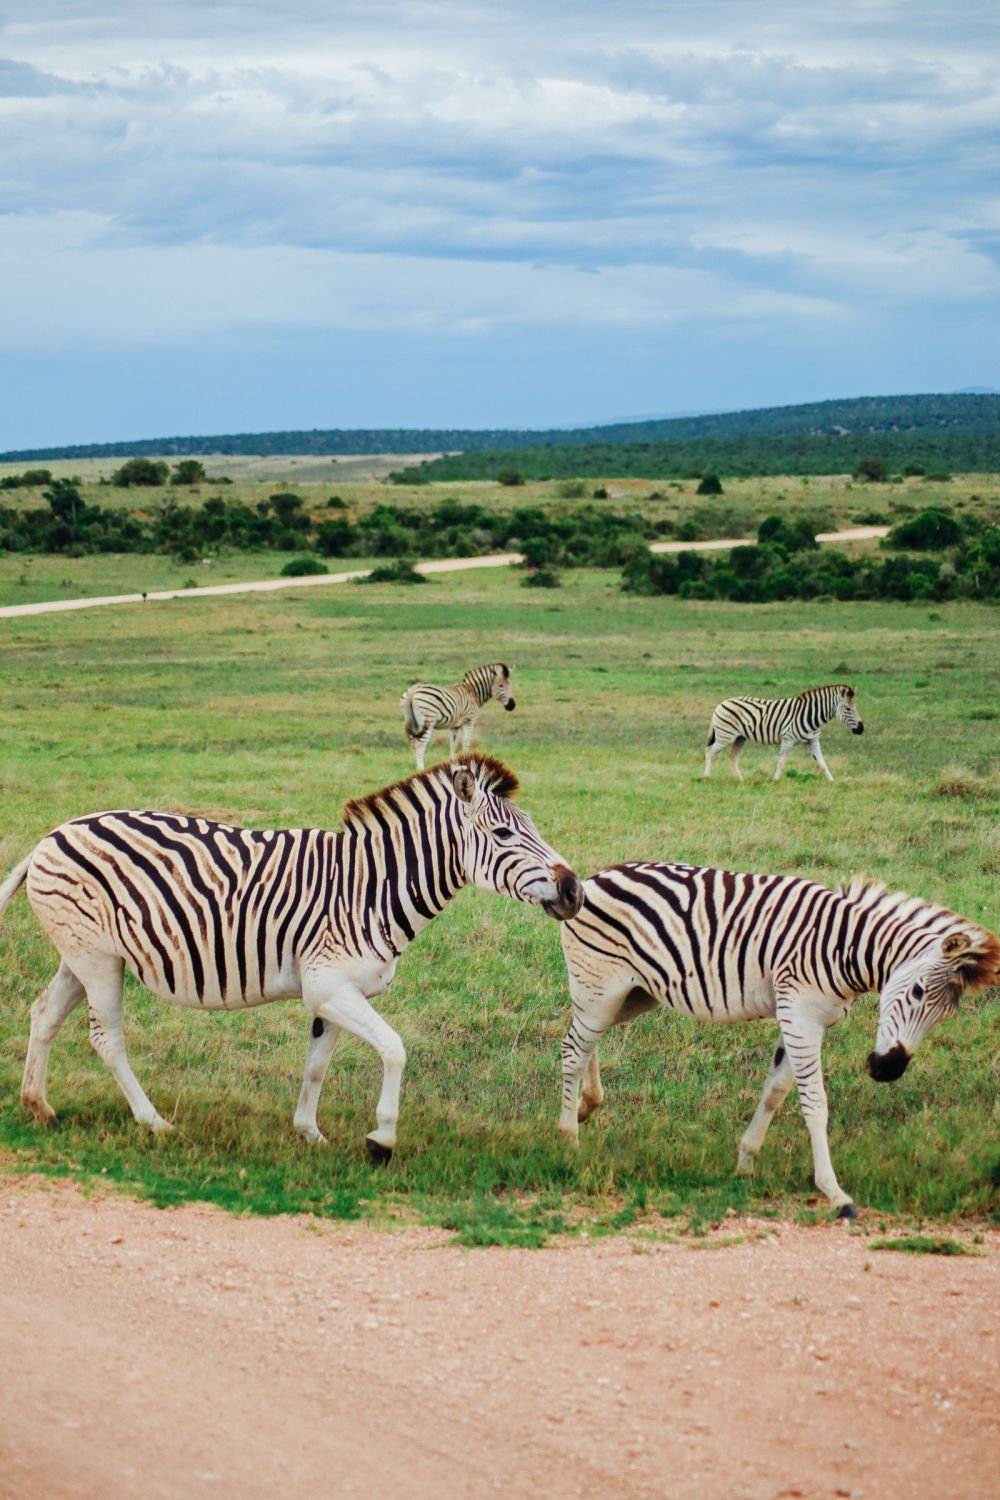 The Last 24 Hours In South Africa's Eastern Cape, Port Elizabeth, Addo National Park (34)